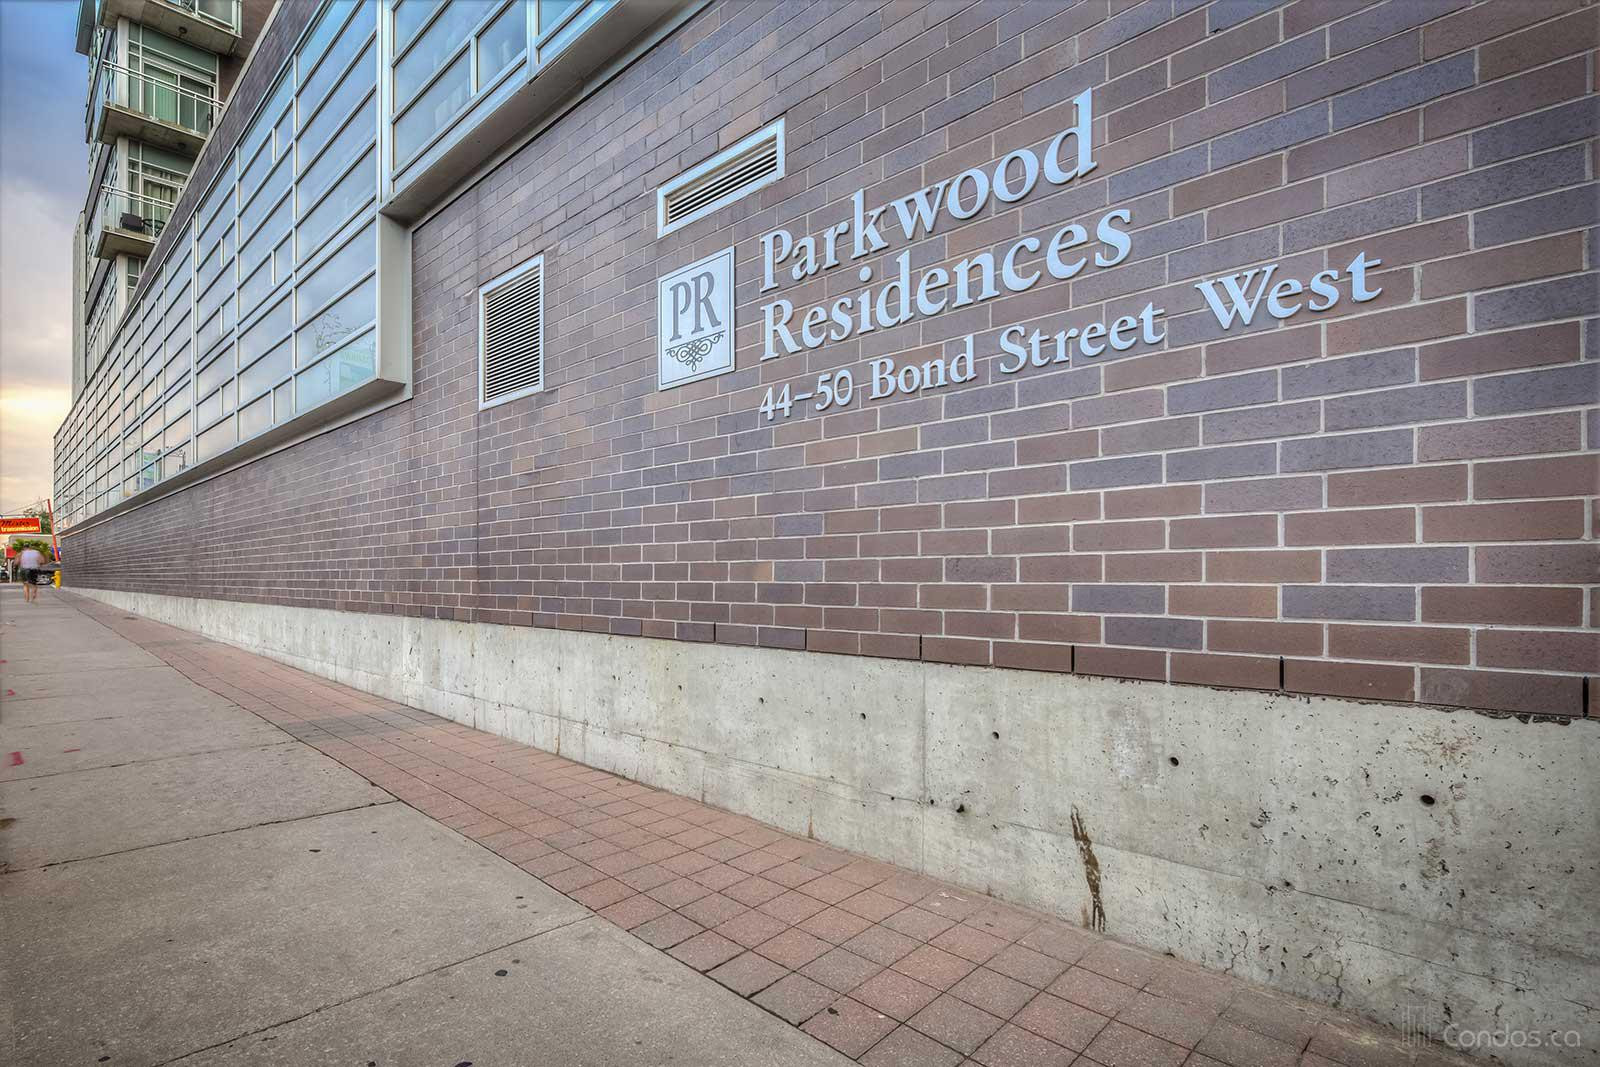 Parkwood Residences at 44 Bond St W, Oshawa 1